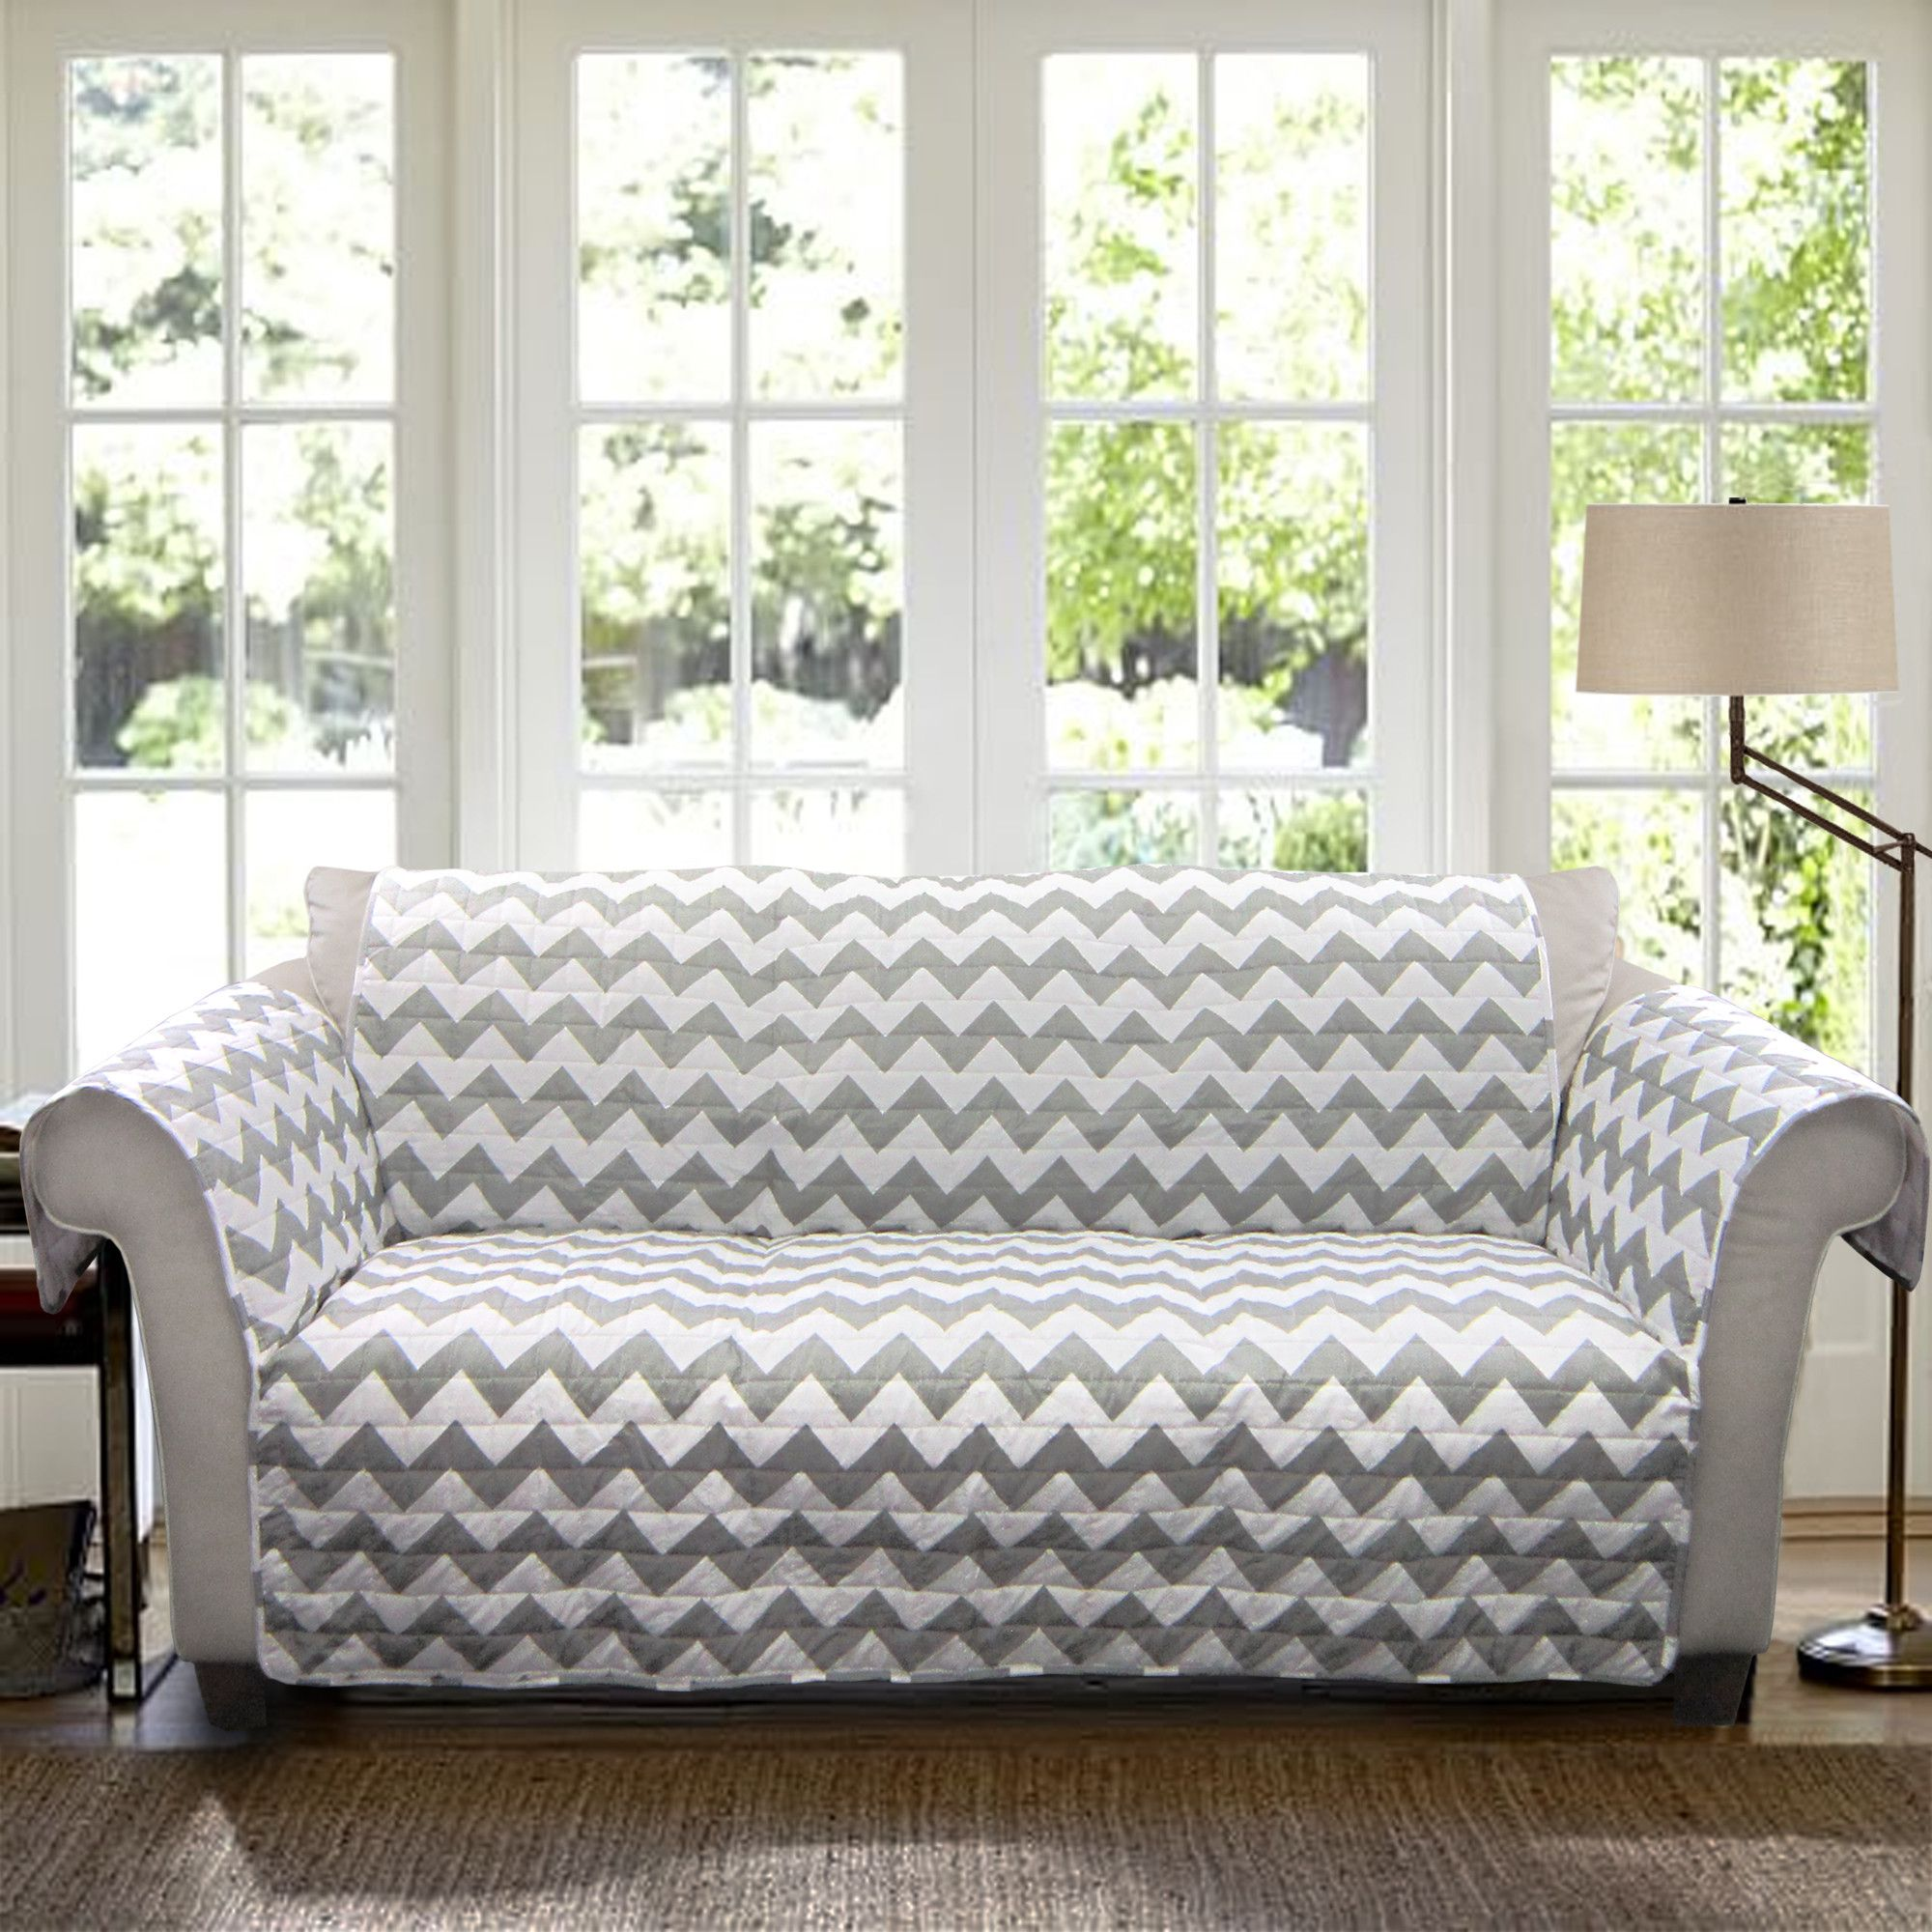 Chair Slipcovers · Special Edition By Lush Decor Chevron Sofa Protector